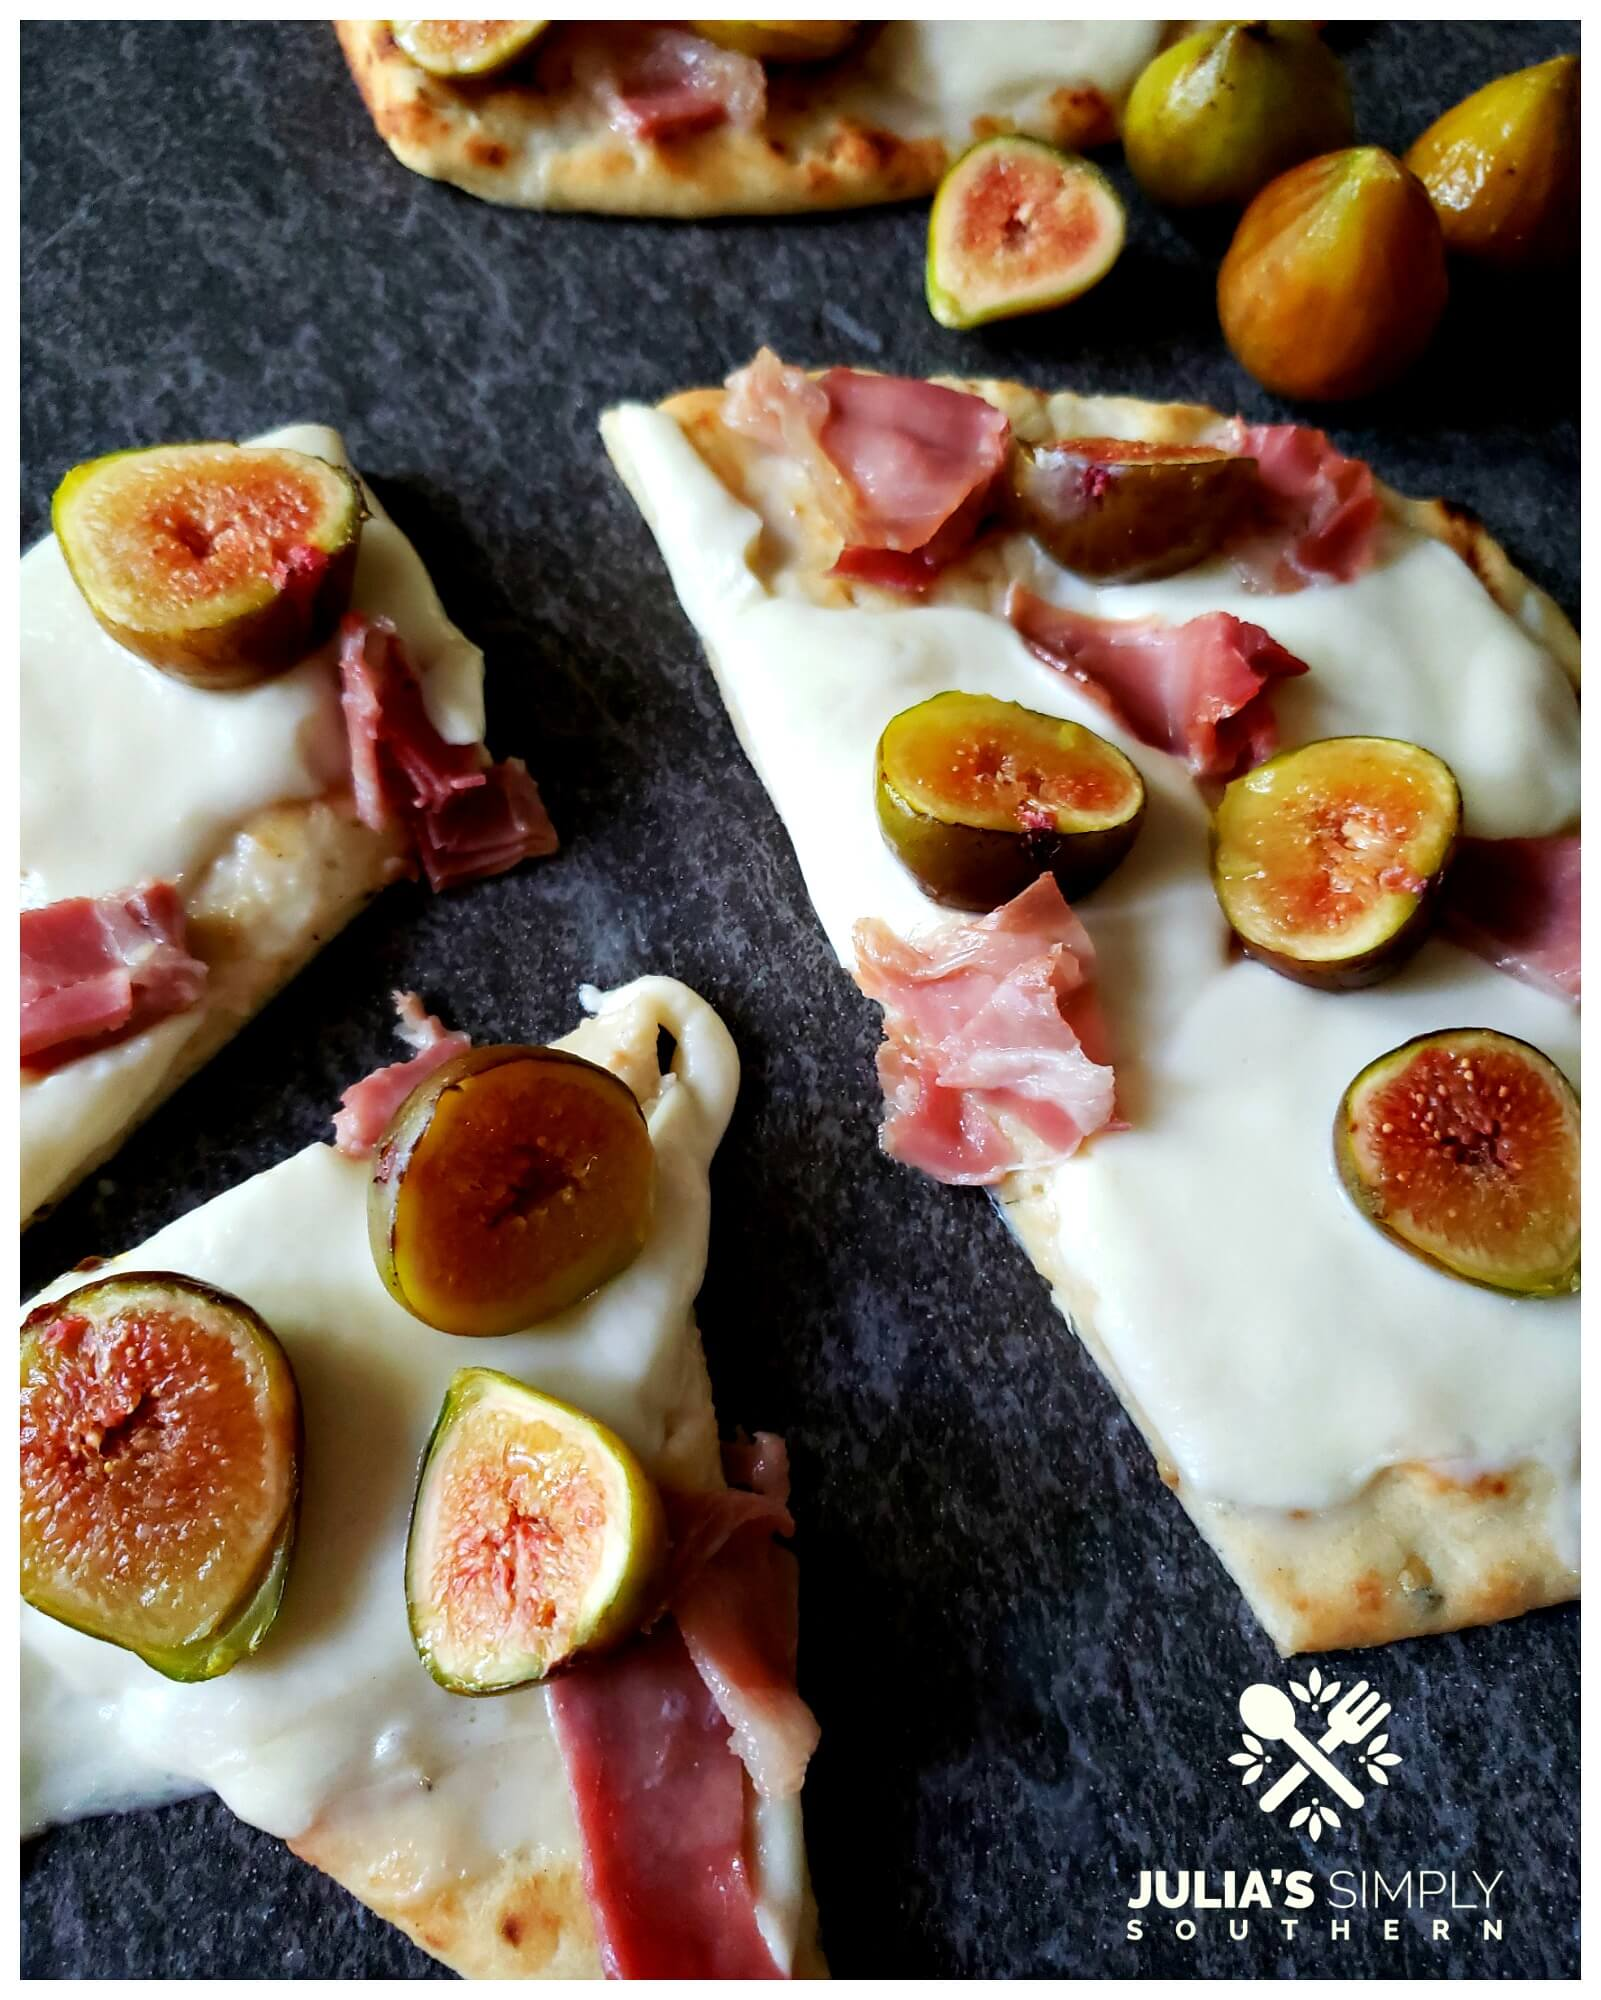 Fresh Fig Pizza that is oven baked on flatbread and so delicious